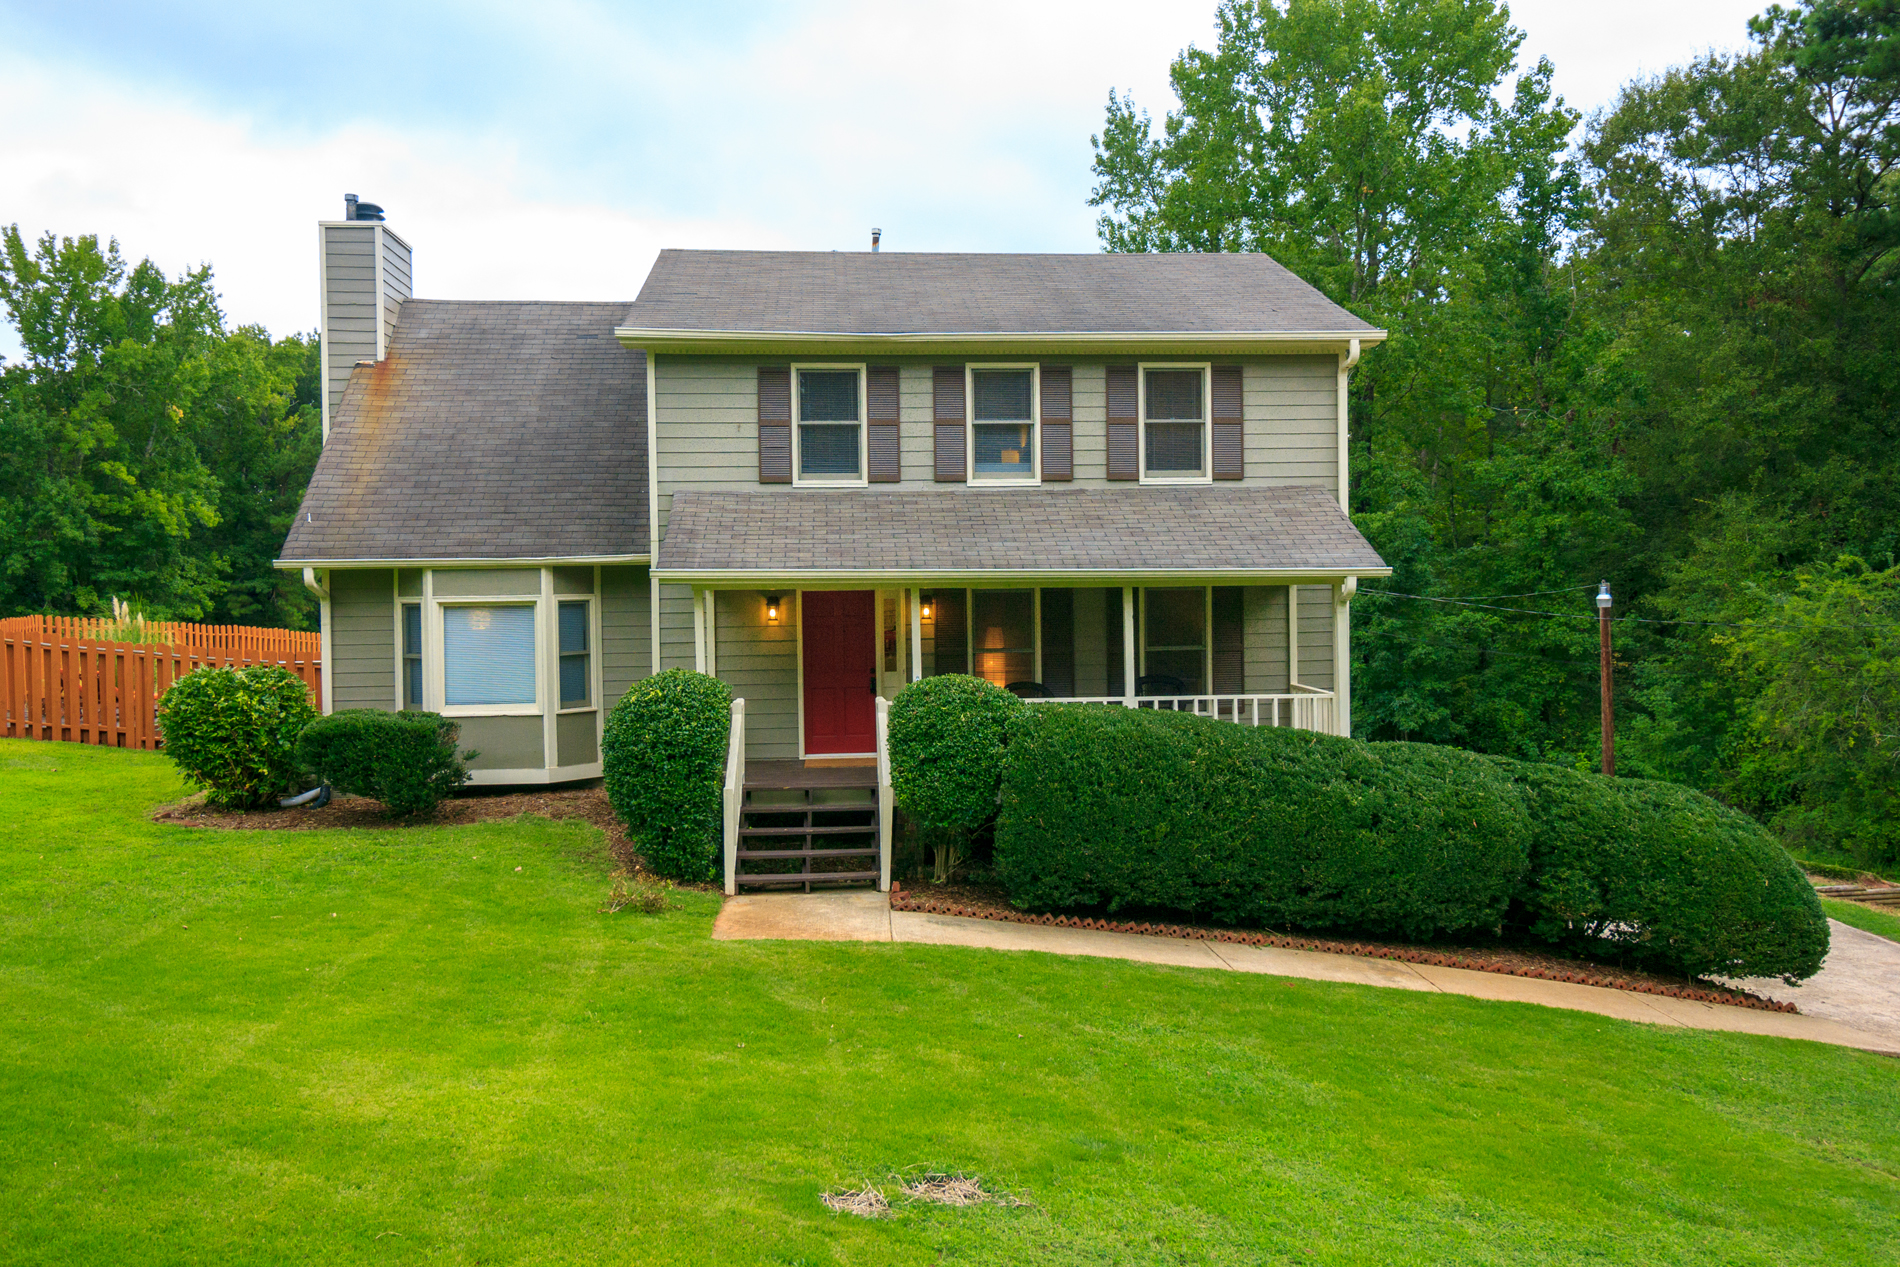 Michael Road Beautiful 2 Story Furnished Home With